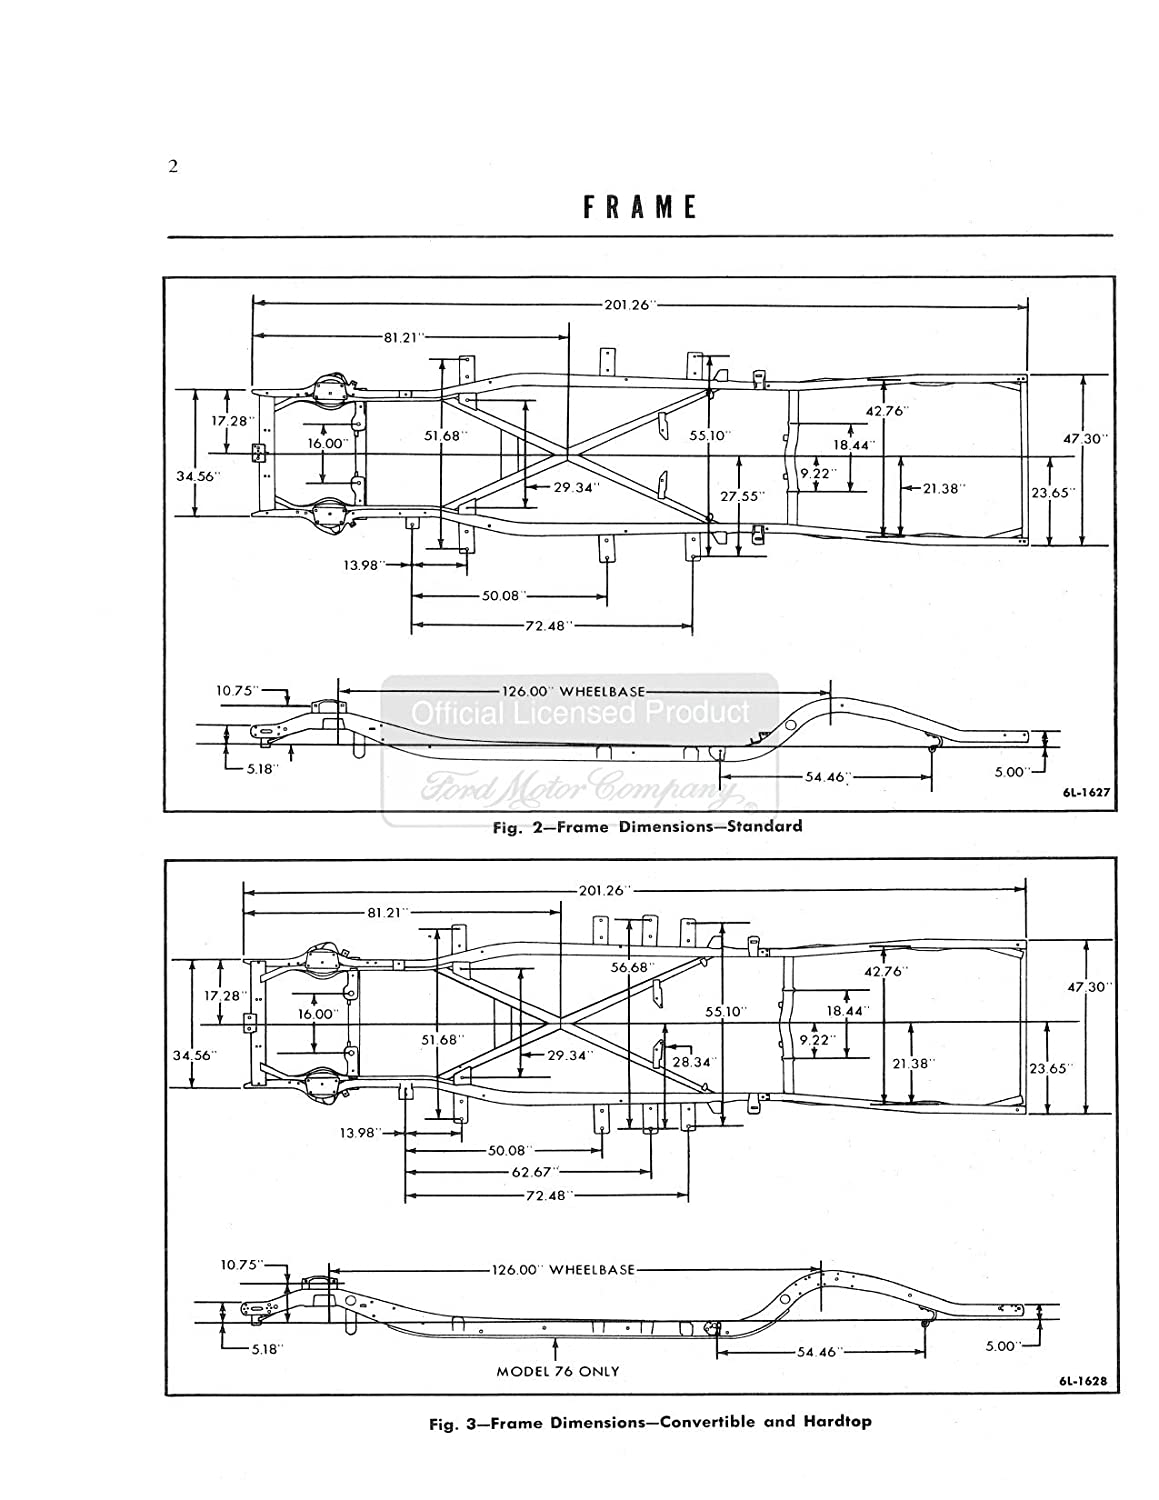 1956 1957 Lincoln Capri Premiere Shop Service Repair Fire Engine Drivetrain Diagram Manual Book Automotive